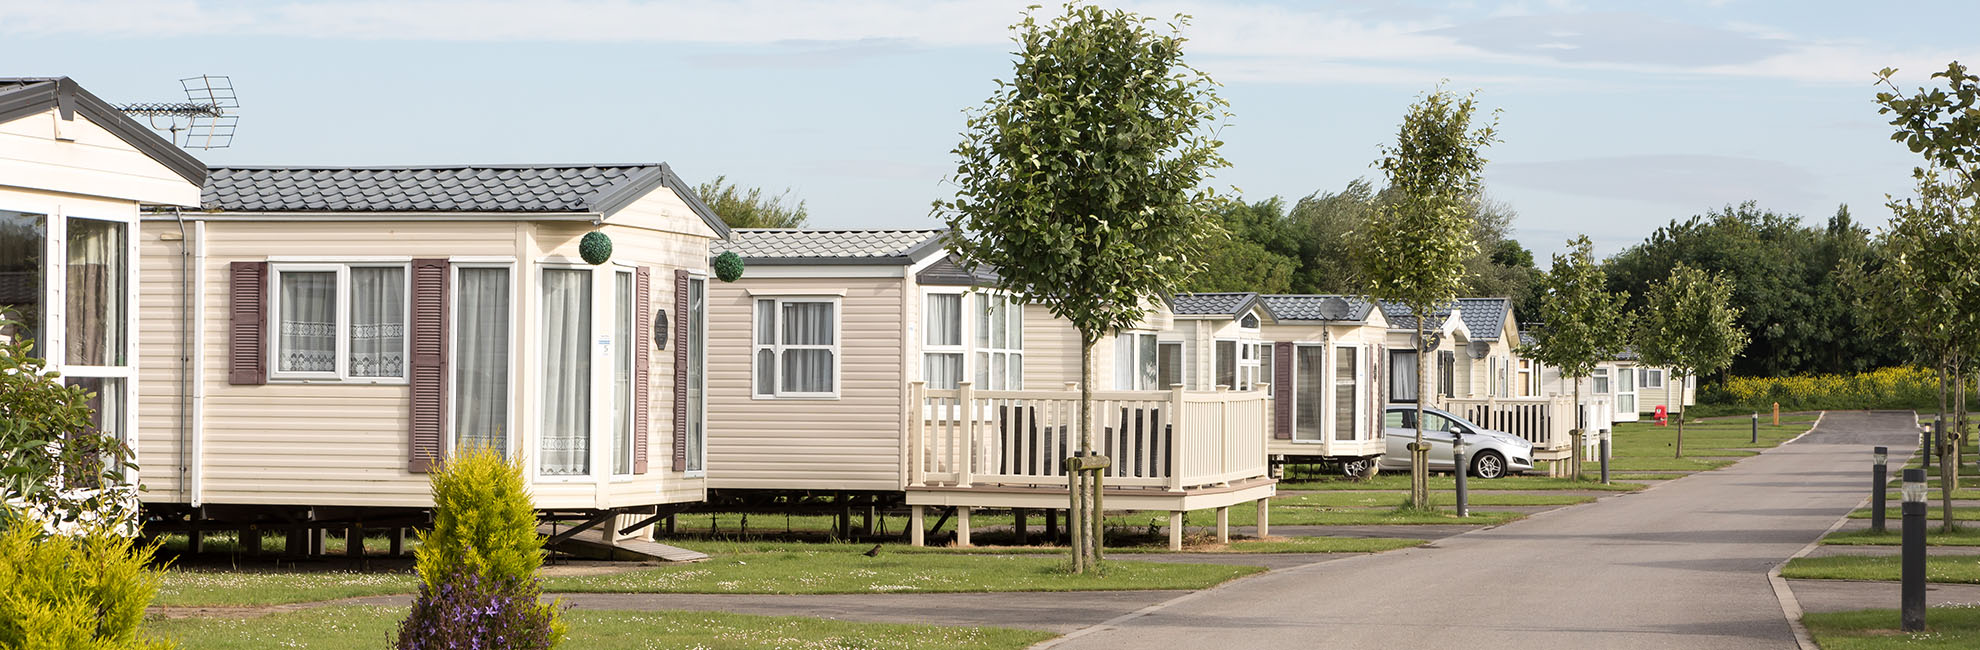 Couple walking through Skipsea Holiday Park